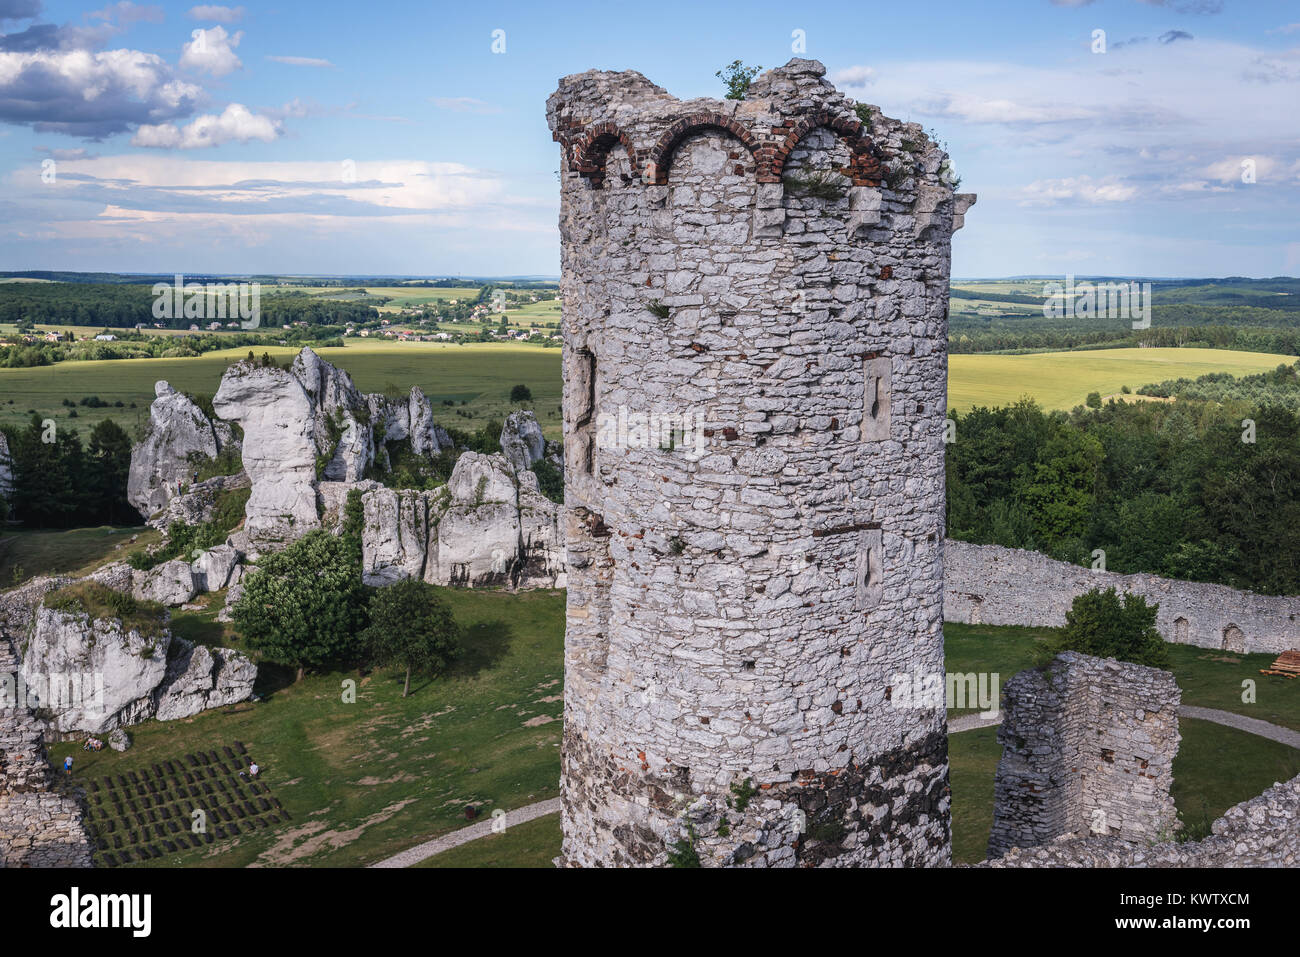 View from tower of Ogrodzieniec Castle in Podzamcze village, part of the Eagles Nests castle system in Silesian Stock Photo